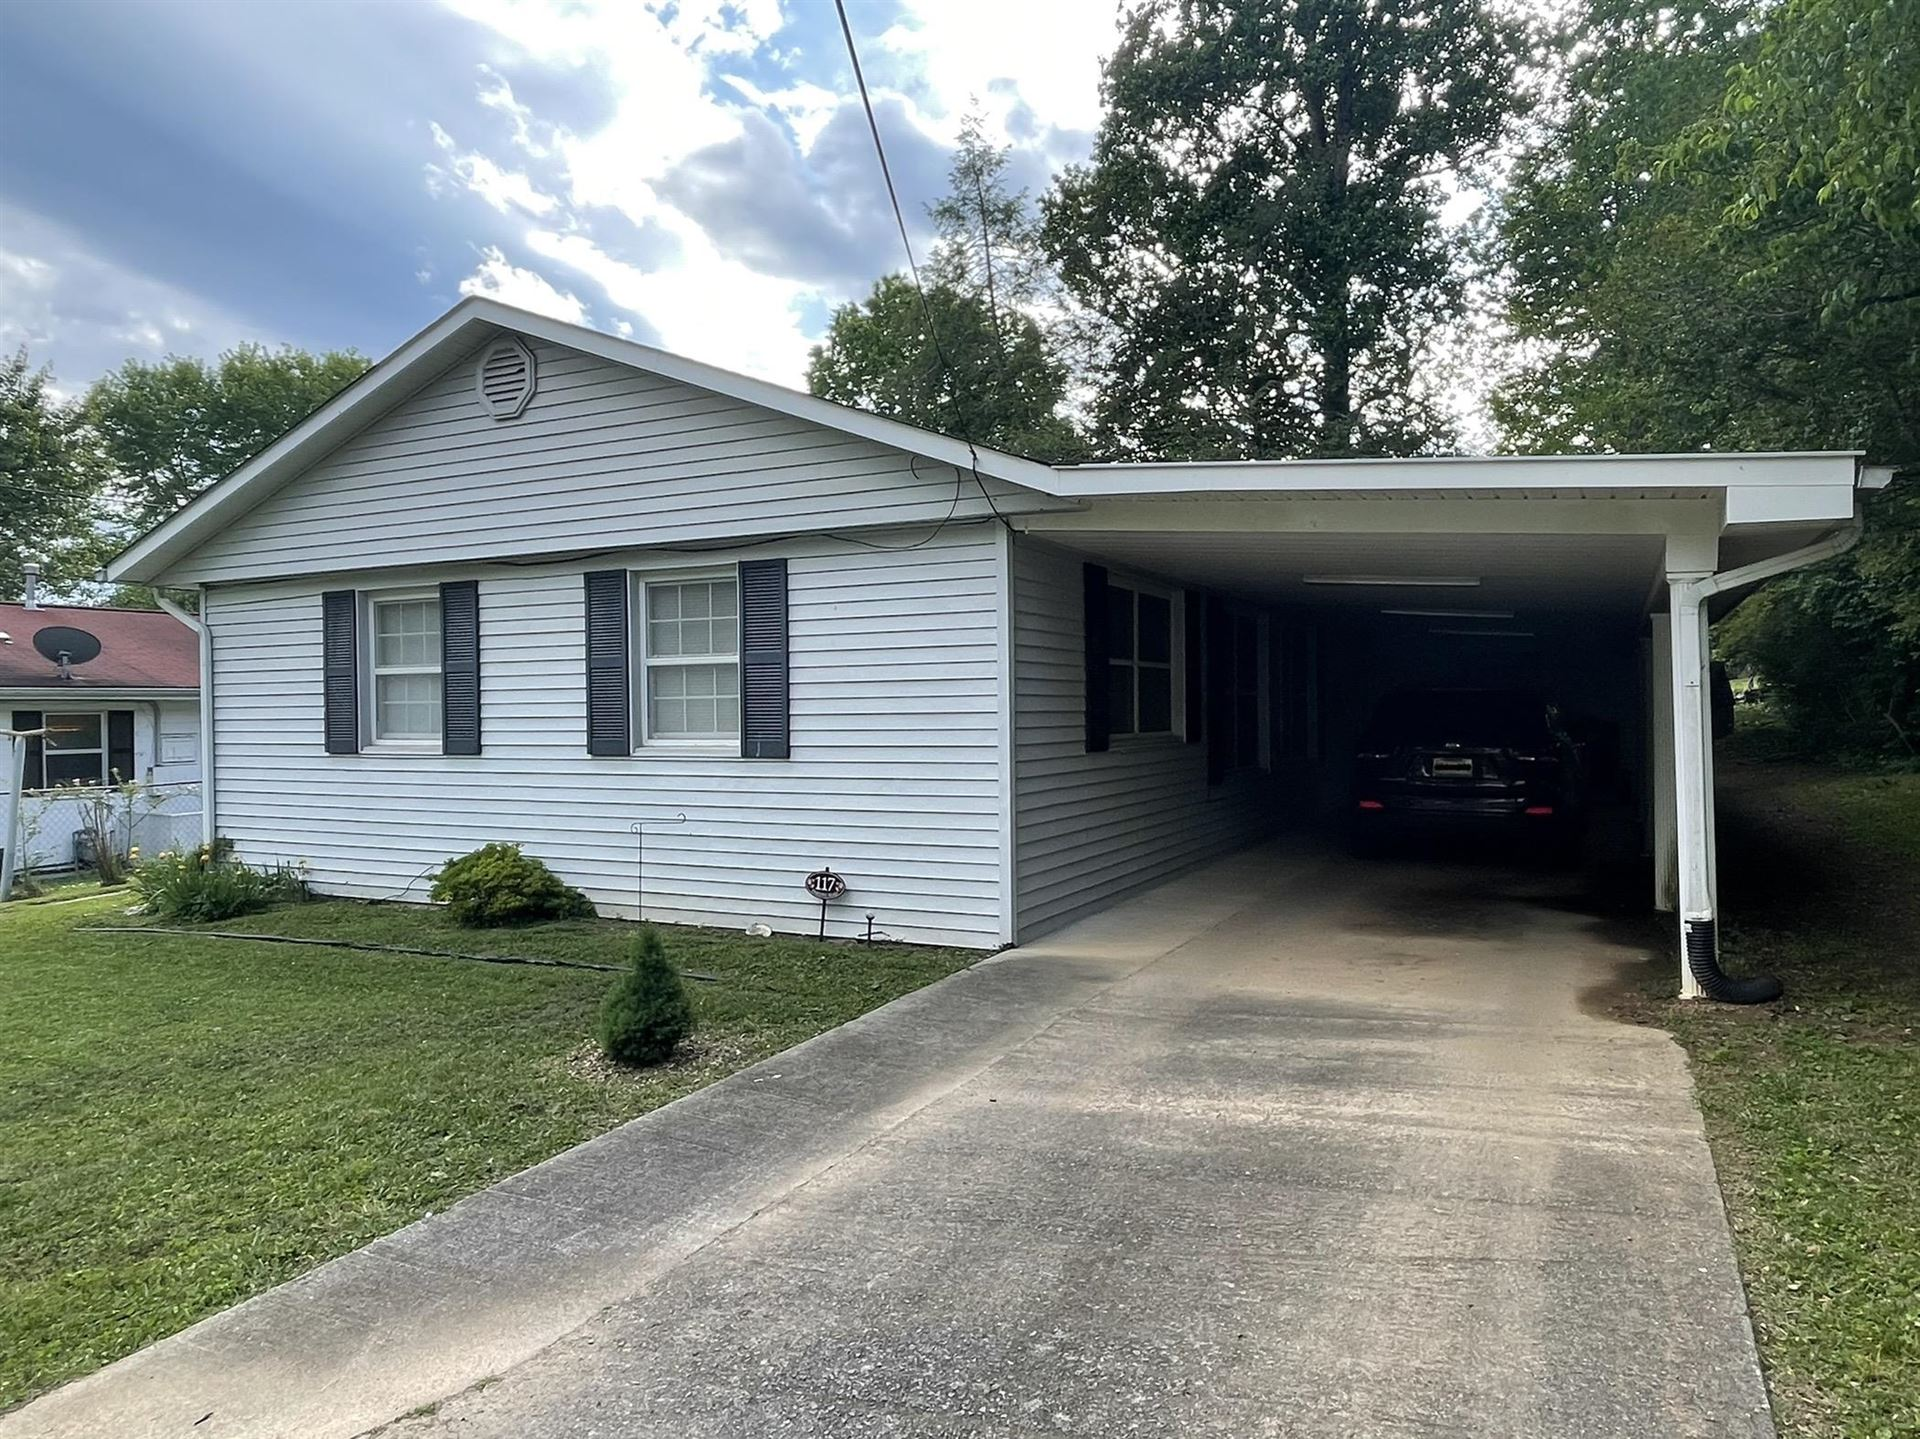 Photo of 117 Parsons Rd, Oak Ridge, TN 37830 (MLS # 1152491)